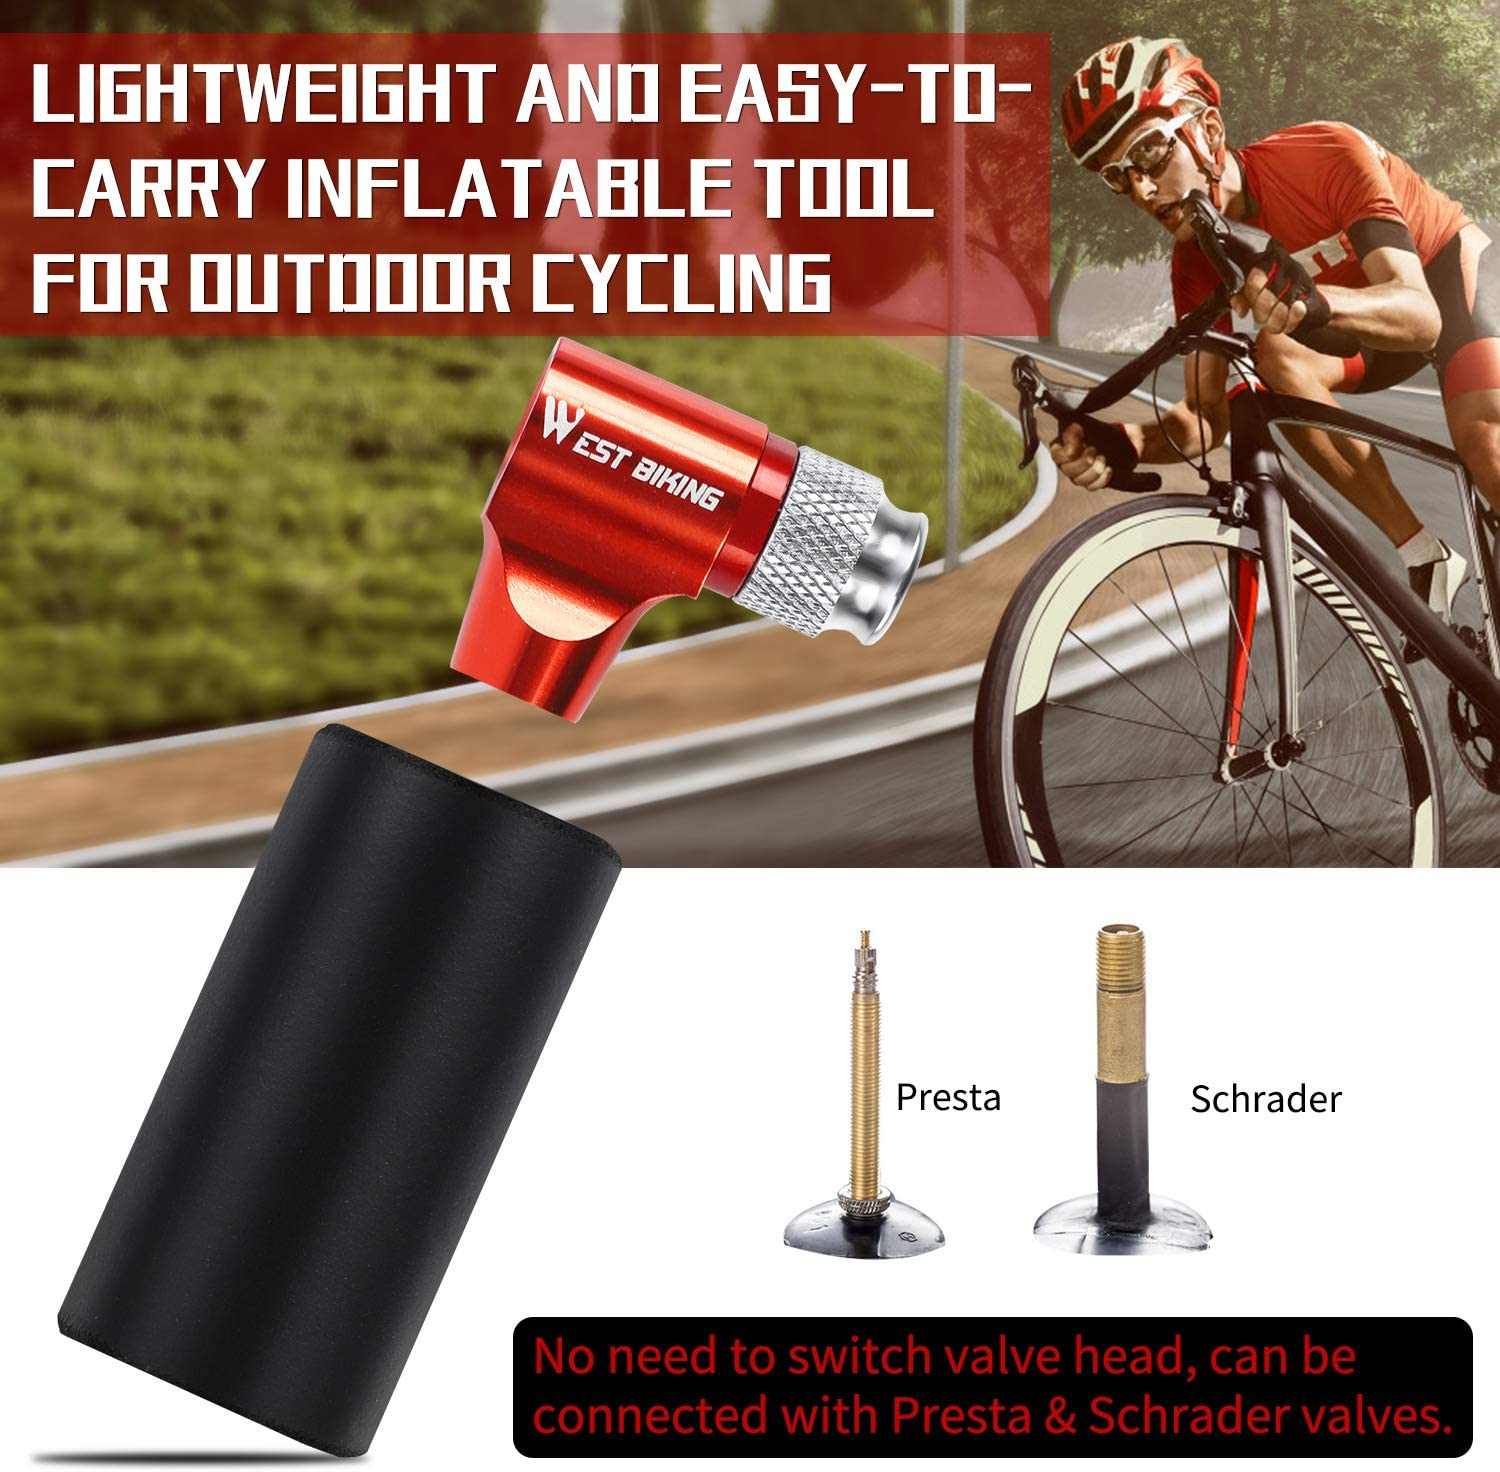 Fits Presta and Schrader Easy Screw-On Design Bicycle Mini Hand Pump with/Insulated Sleeve for Road Mountain Bikes CO2 Inflator Bike Tire Pump No CO2 Cartridges Included